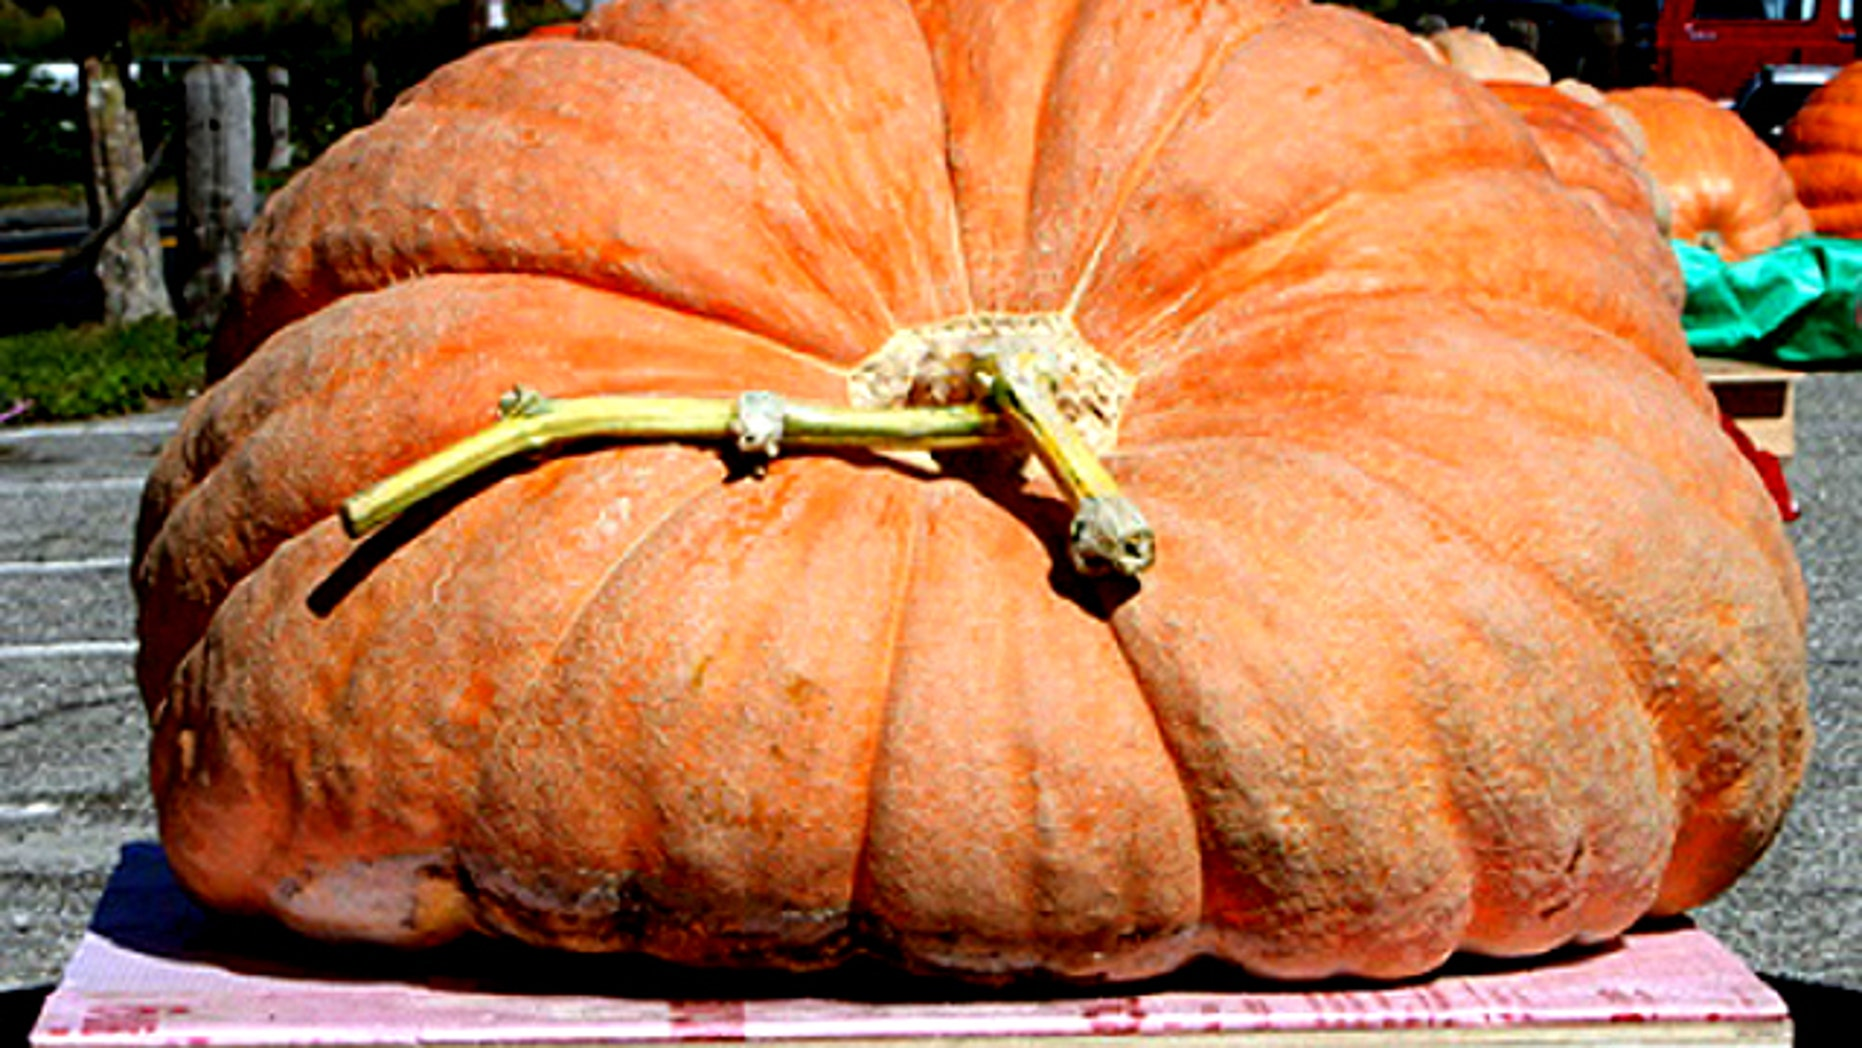 Super-sized pumpkins are attracting attention as scientists work with growers to make them even larger.